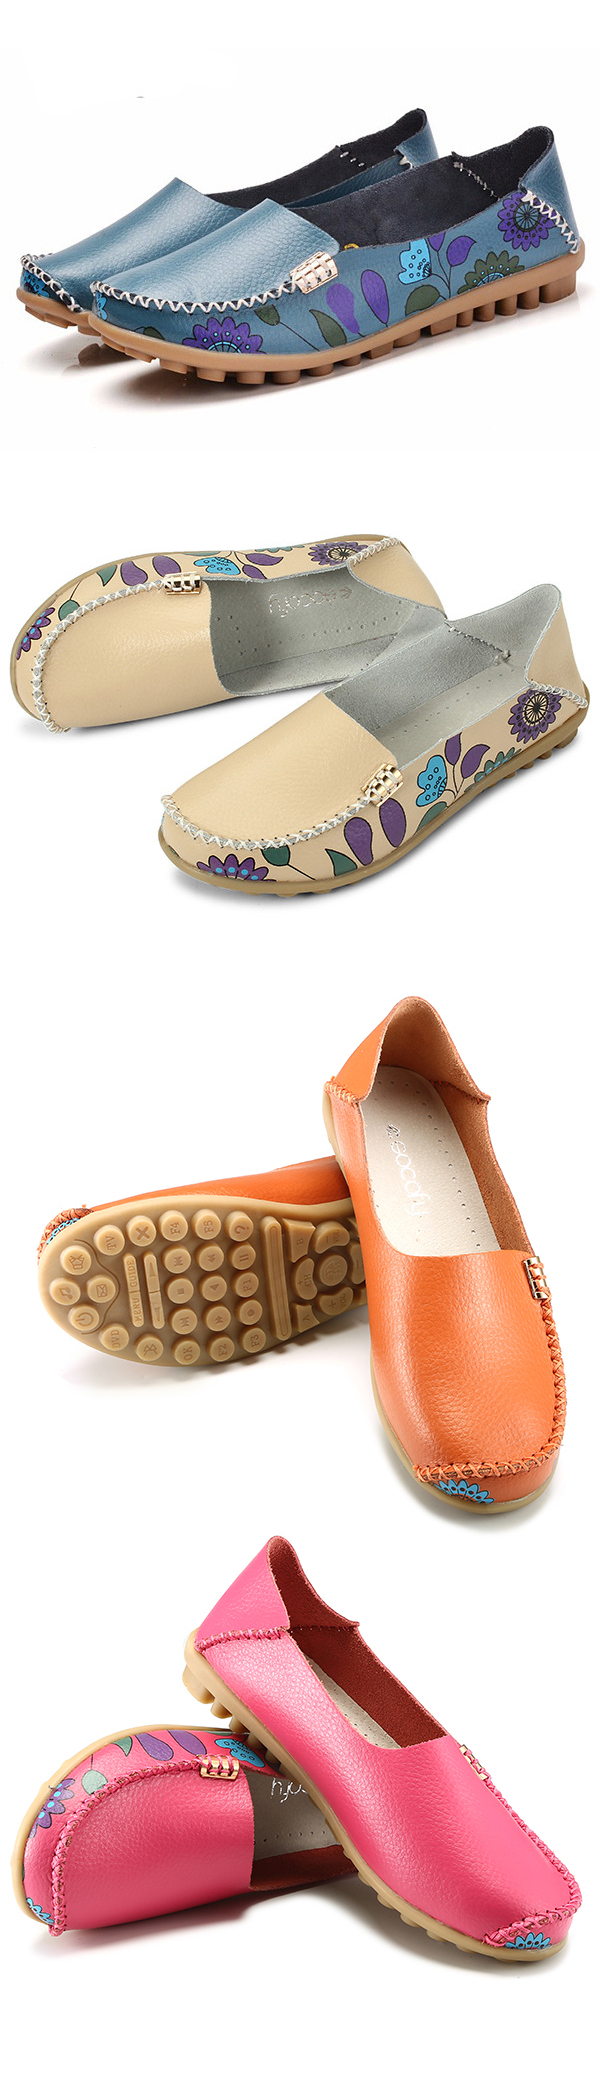 6a5d5ba54fbe  16.51 Socofy Flower Print Soft Comfortable Flat Leather Lazy Slippers Shoes